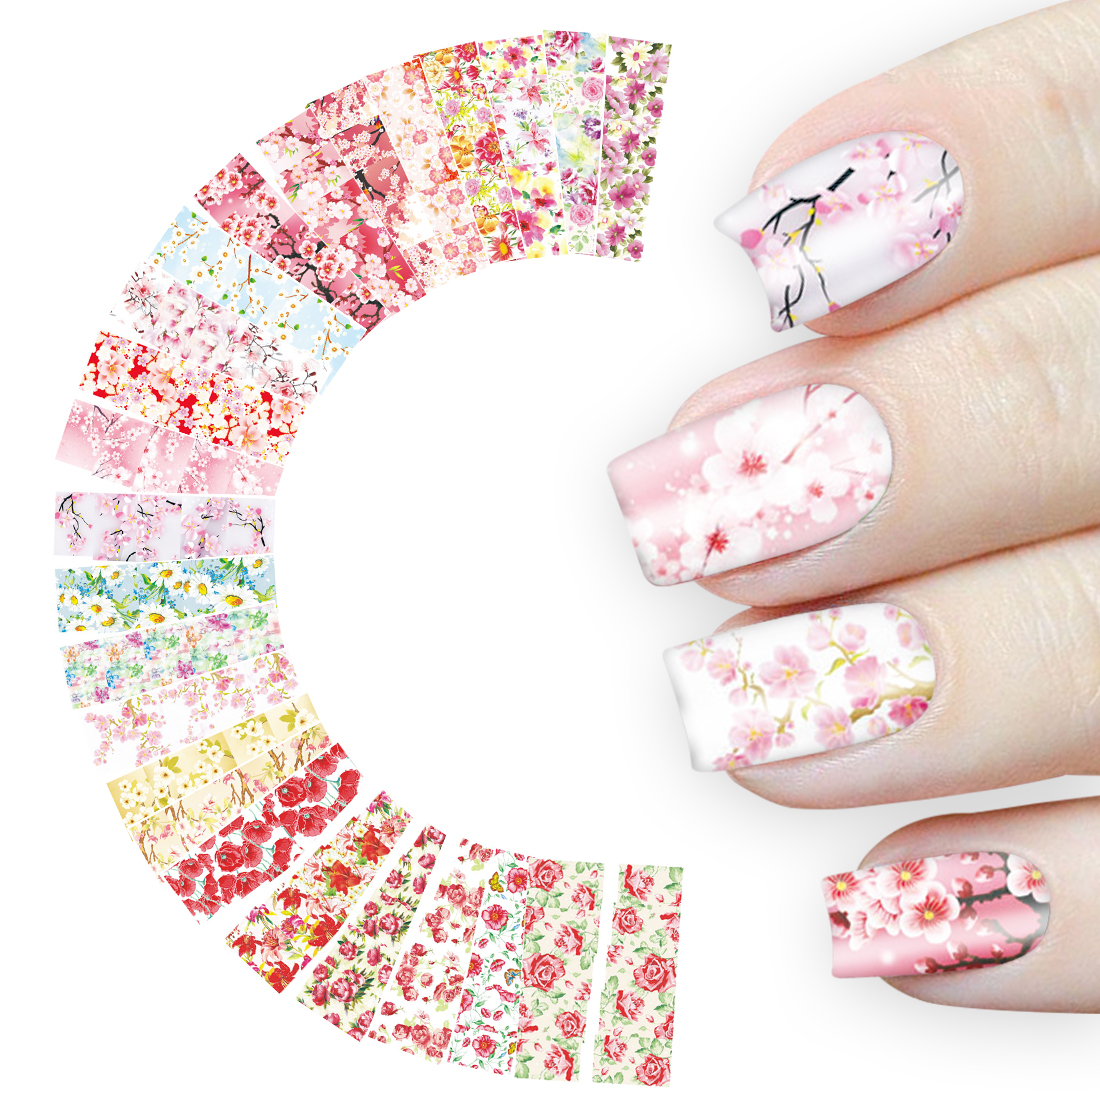 Sakura Nail Art Sticker 24 Sheet Flowers Water Nail Decals Rose Daisy Cherry Blossom Transfer Full Wraps Manicure Decoration 1pcs water nail art transfer nail sticker water decals beauty flowers nail design manicure stickers for nails decorations tools